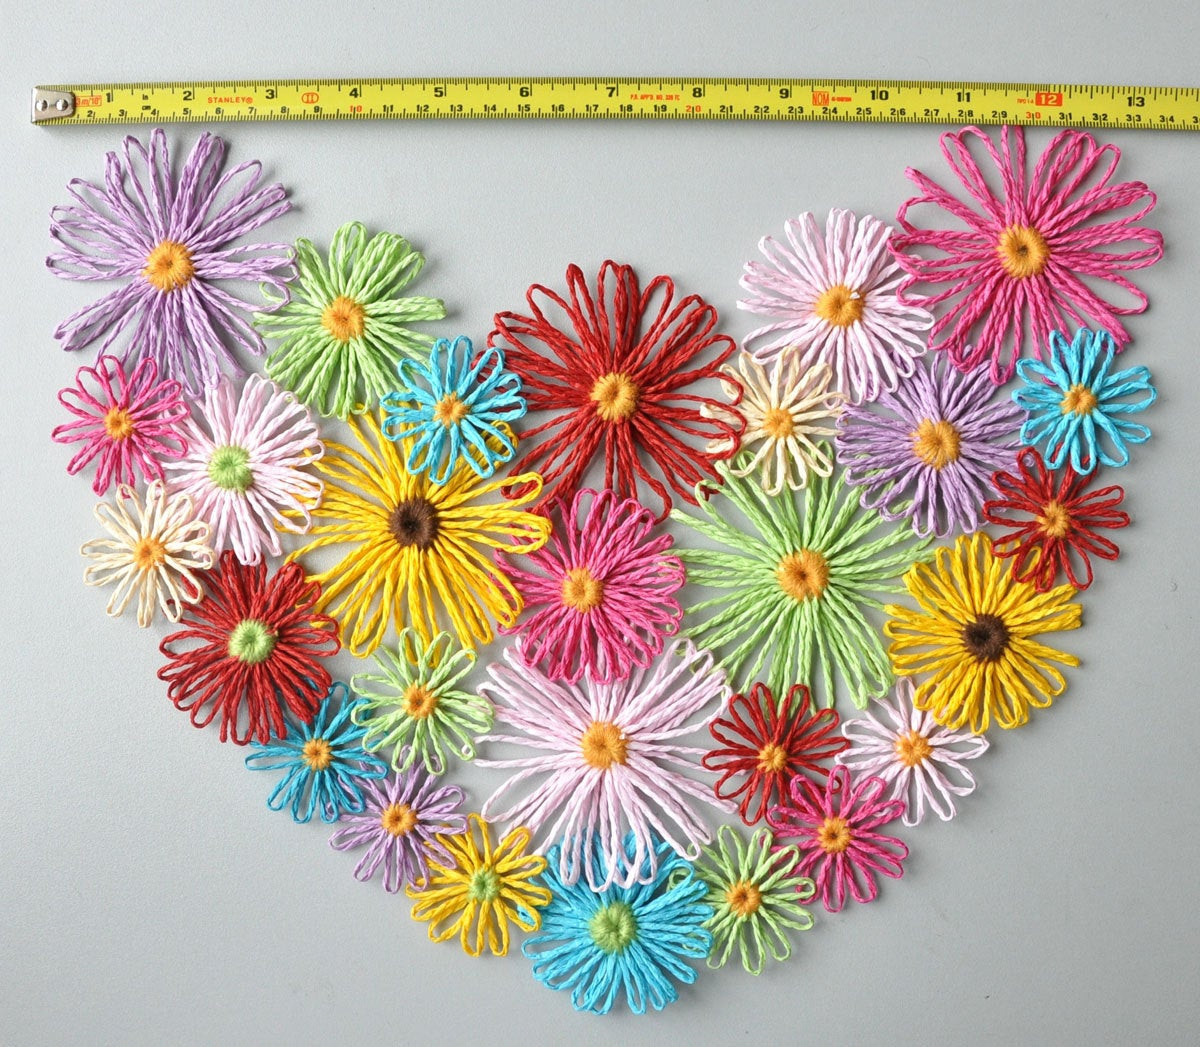 Handmade Wall Decor Floral Heart Handmade Multicolor Loom Flowers Wall Decor